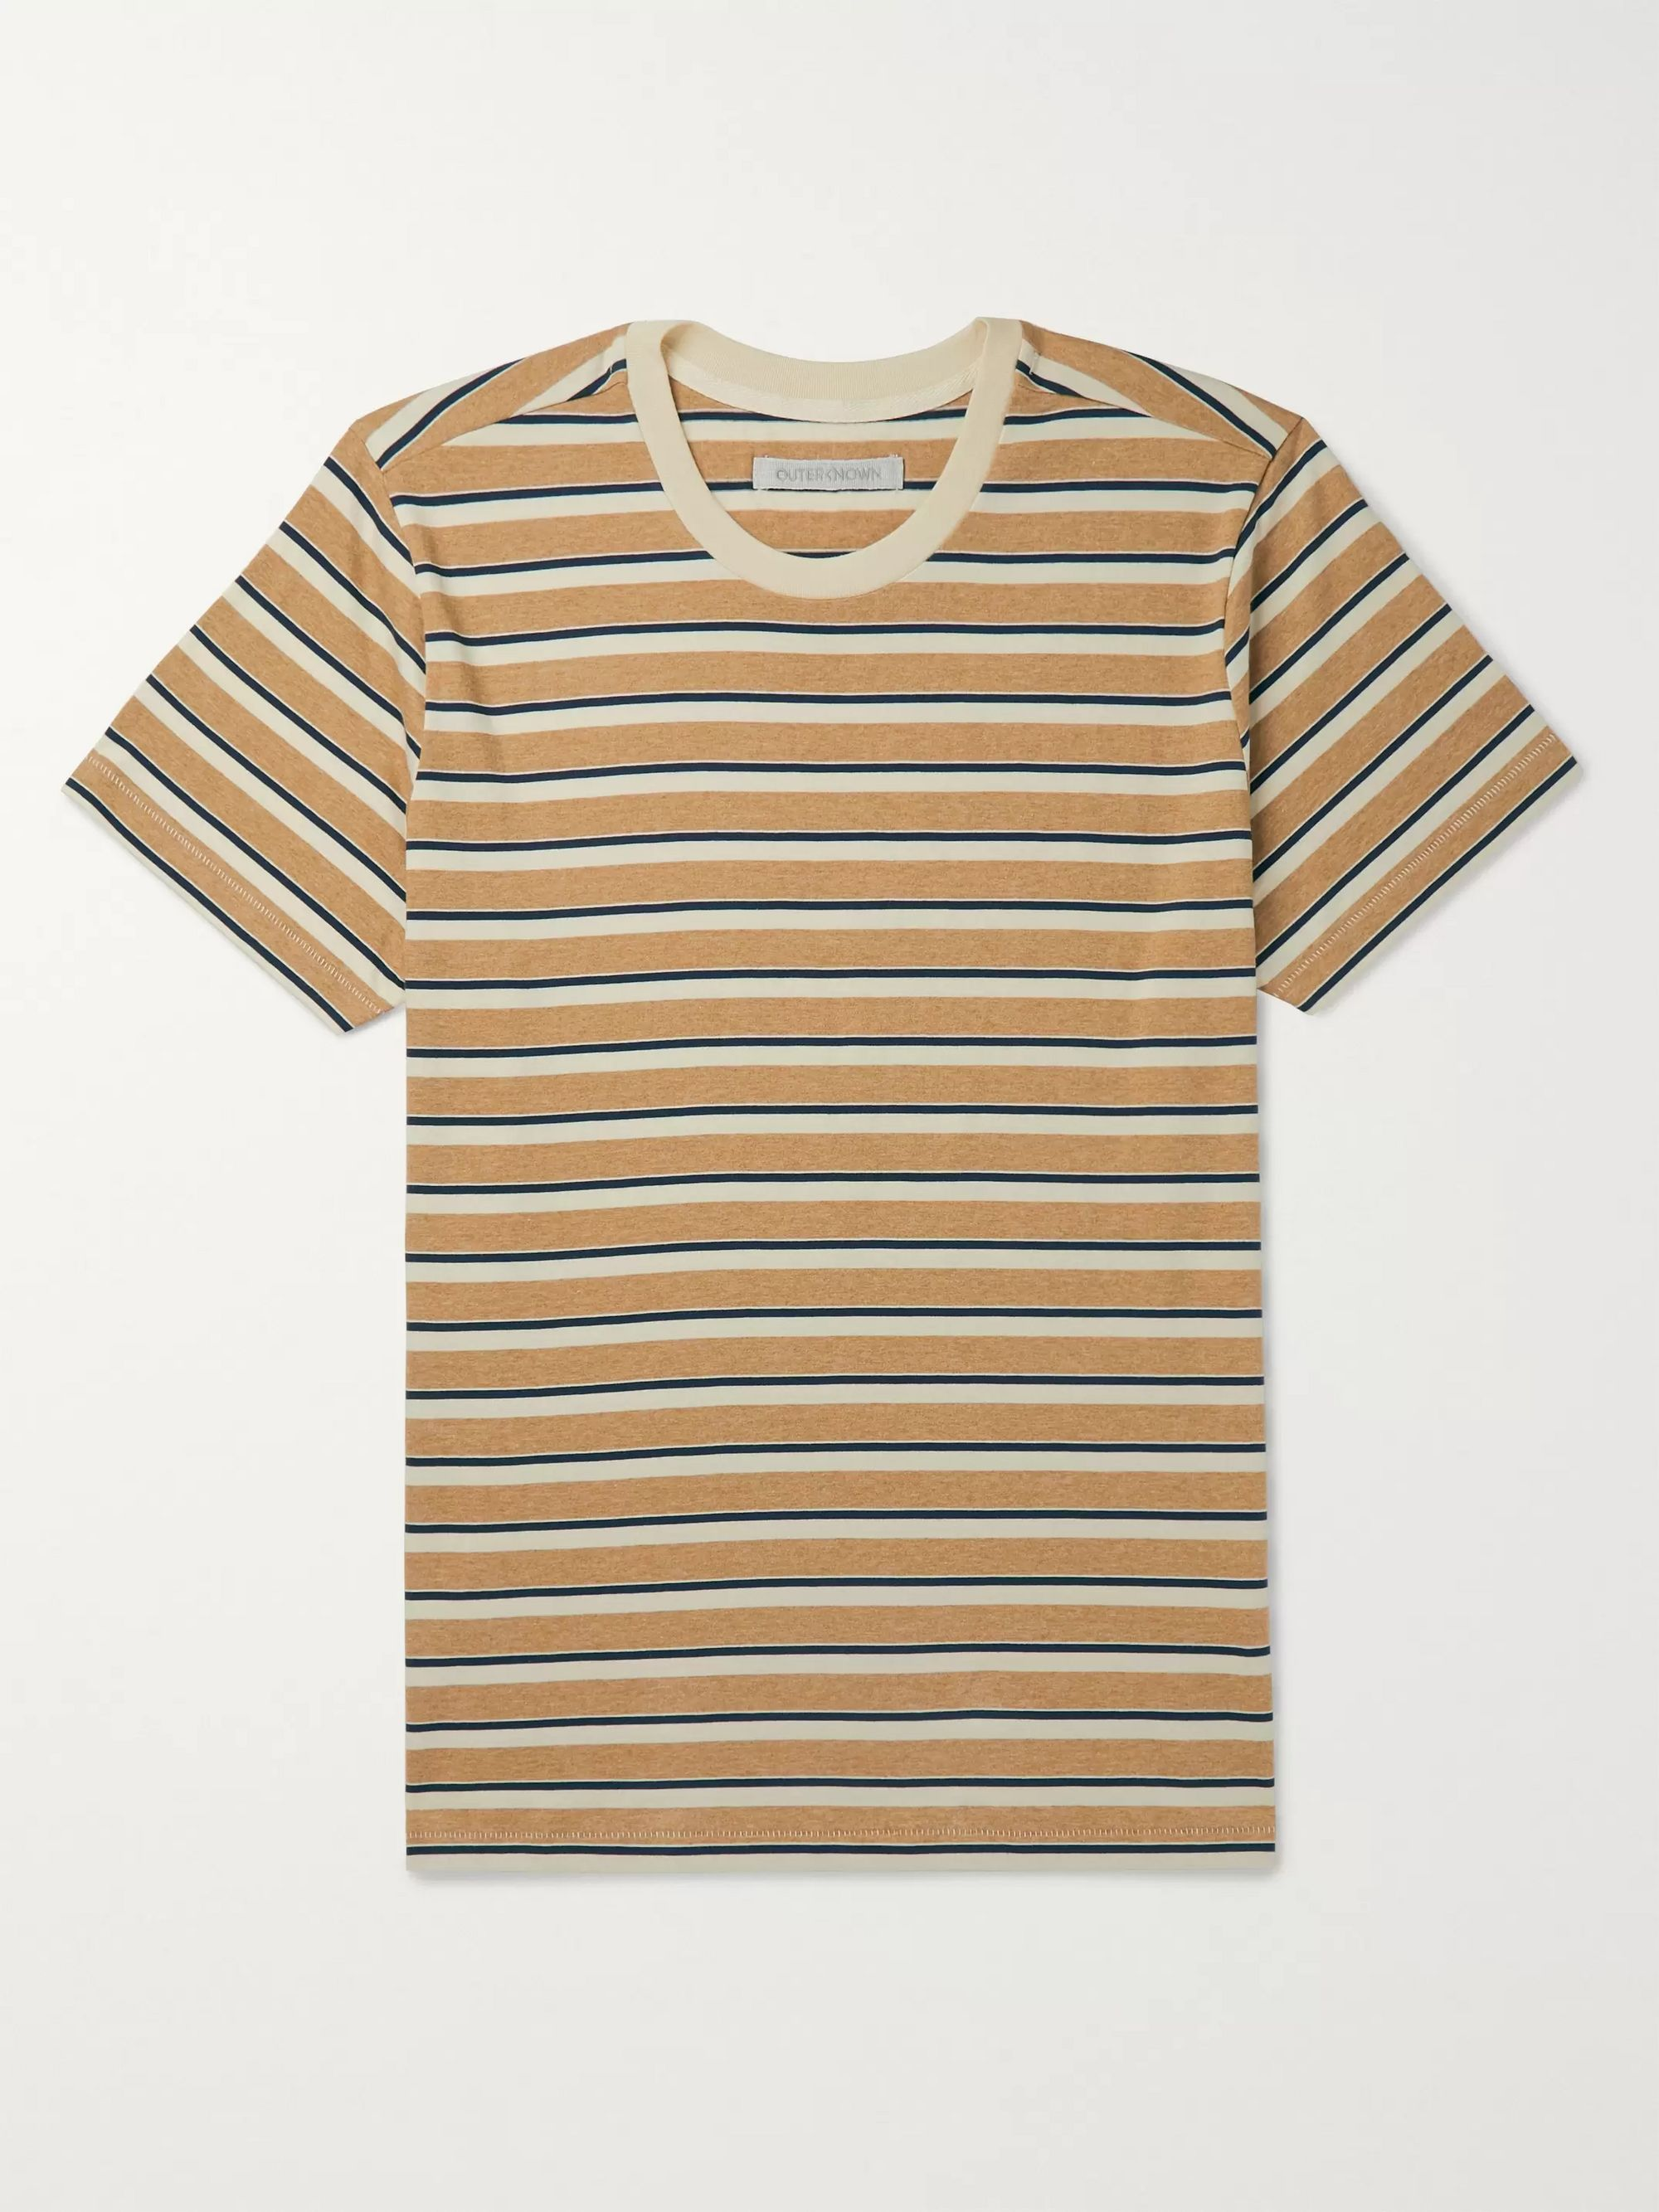 Outerknown Striped Organic Pima Cotton-Jersey T-Shirt